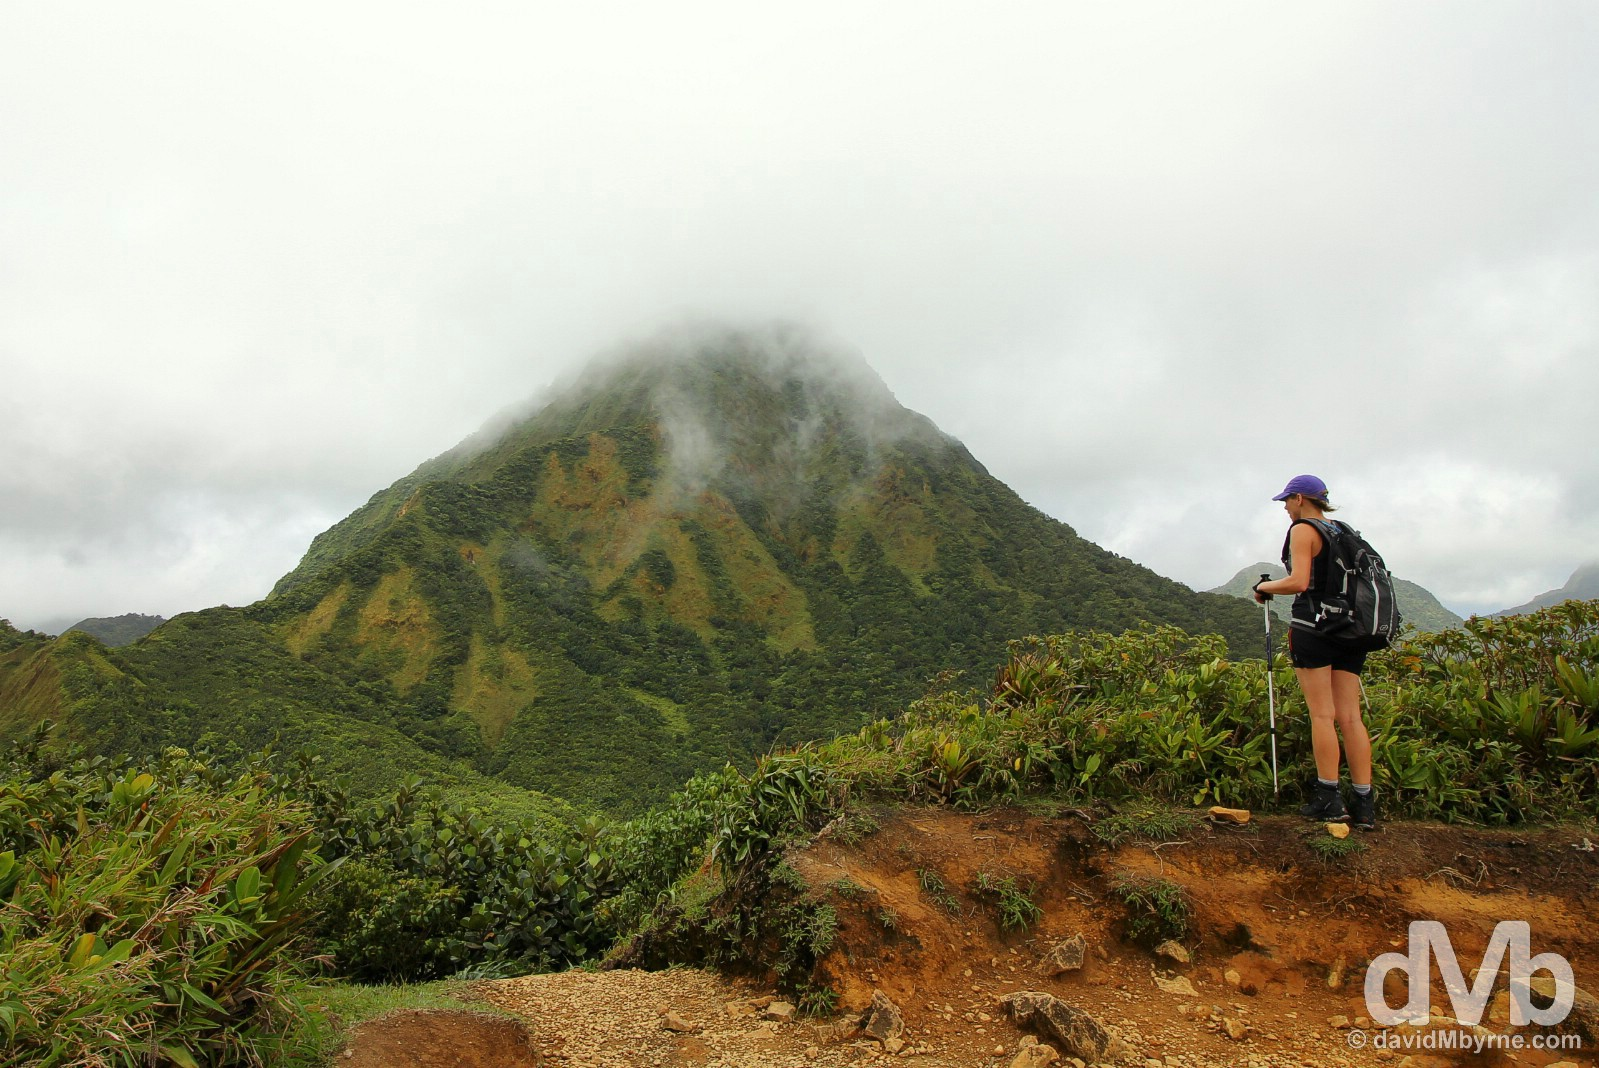 Hiking in Morne Trois Pitons National Park, Dominica, Lesser Antilles. June 11, 2015.